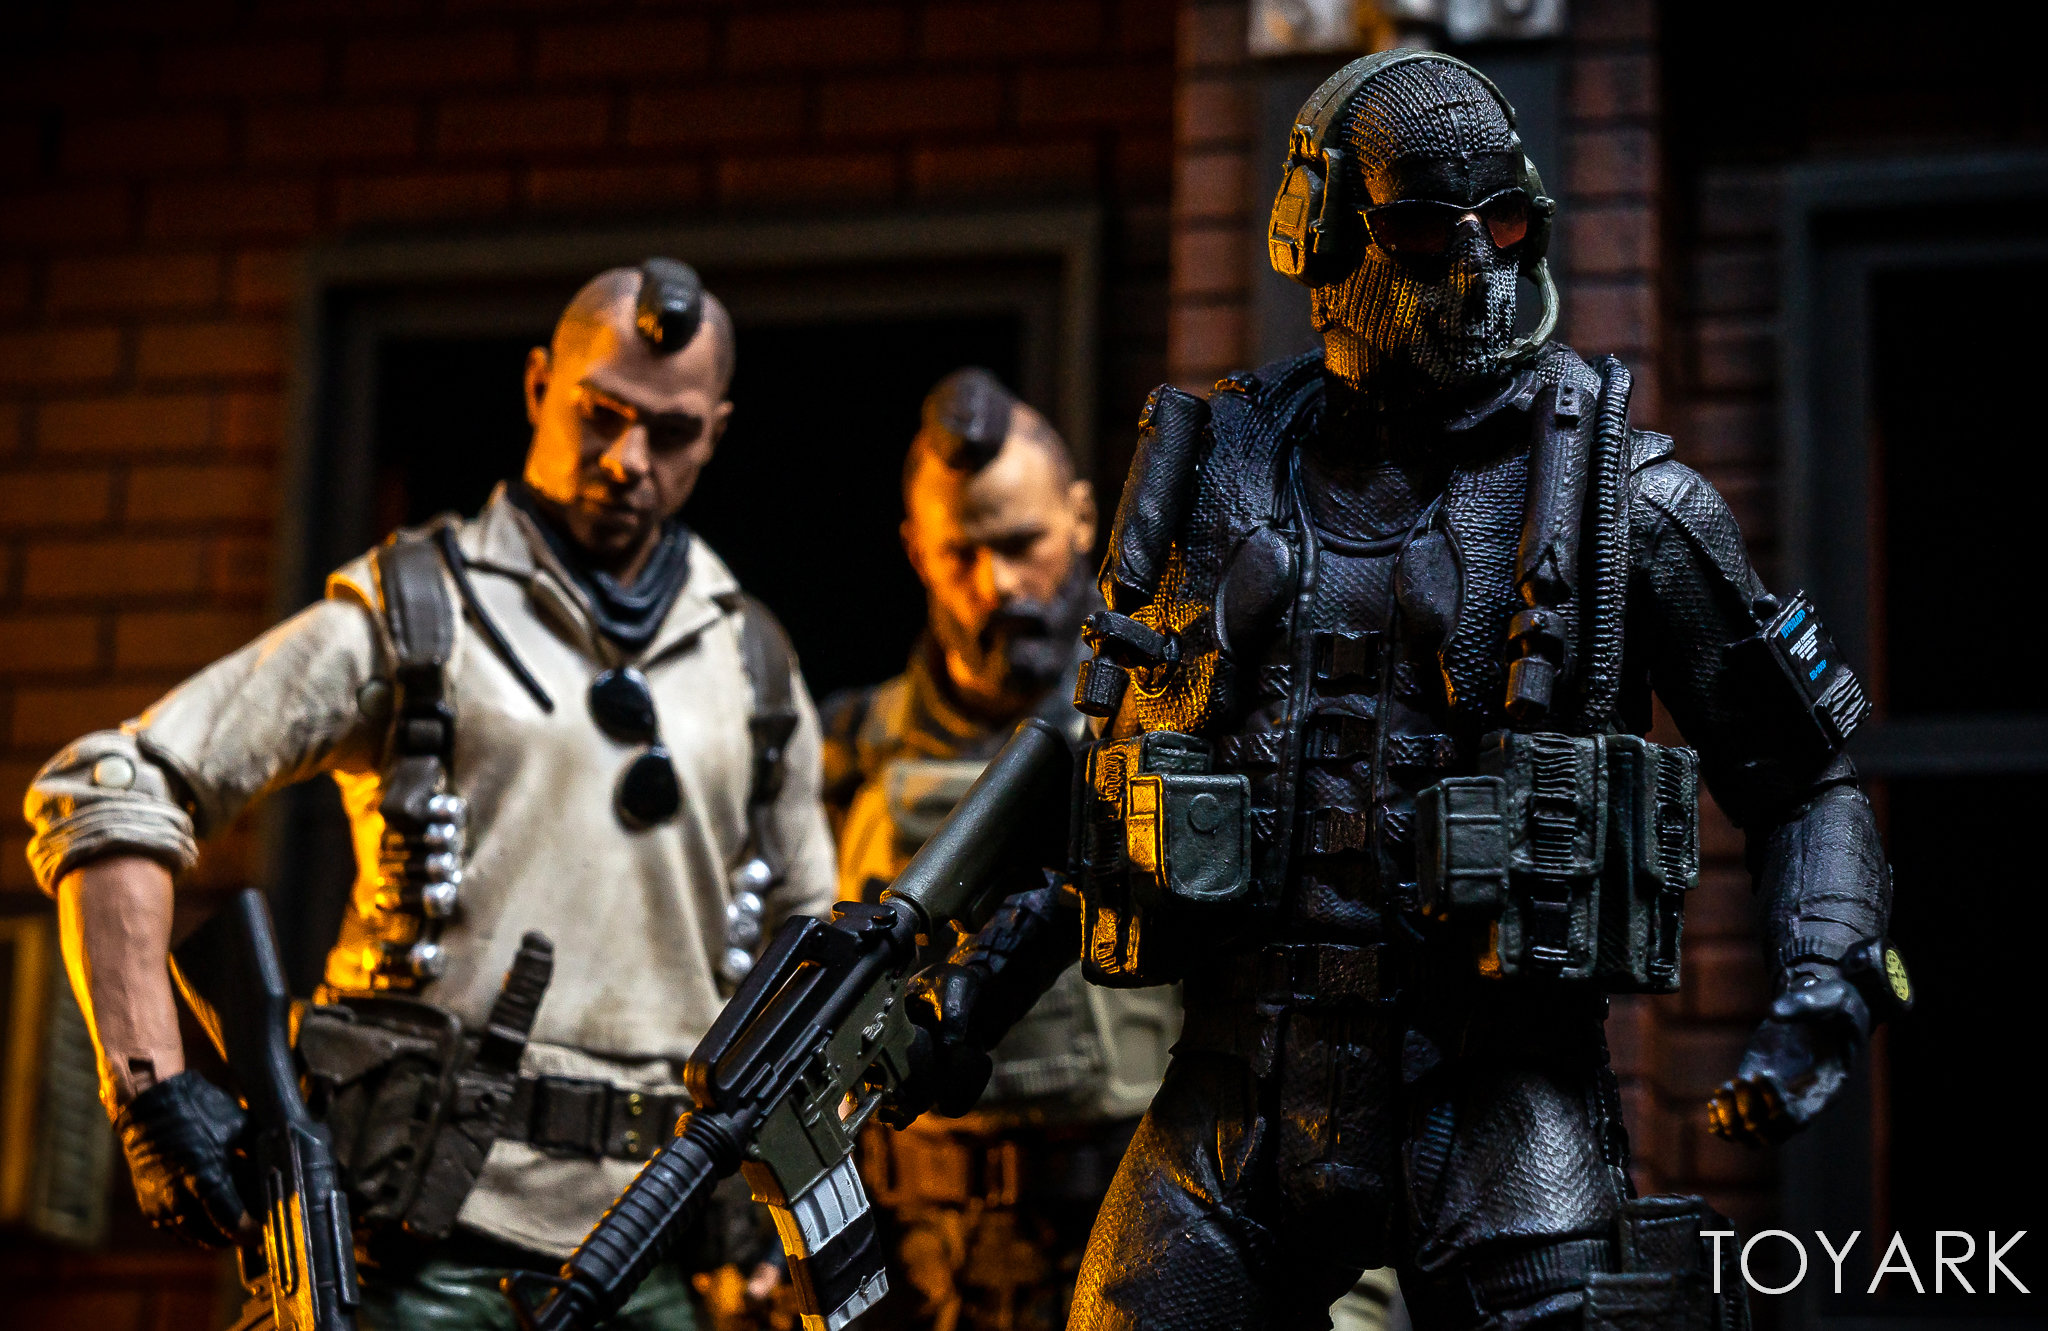 https://news.toyark.com/wp-content/uploads/sites/4/2019/01/Call-of-Duty-Wave-1-McFarlane-038.jpg